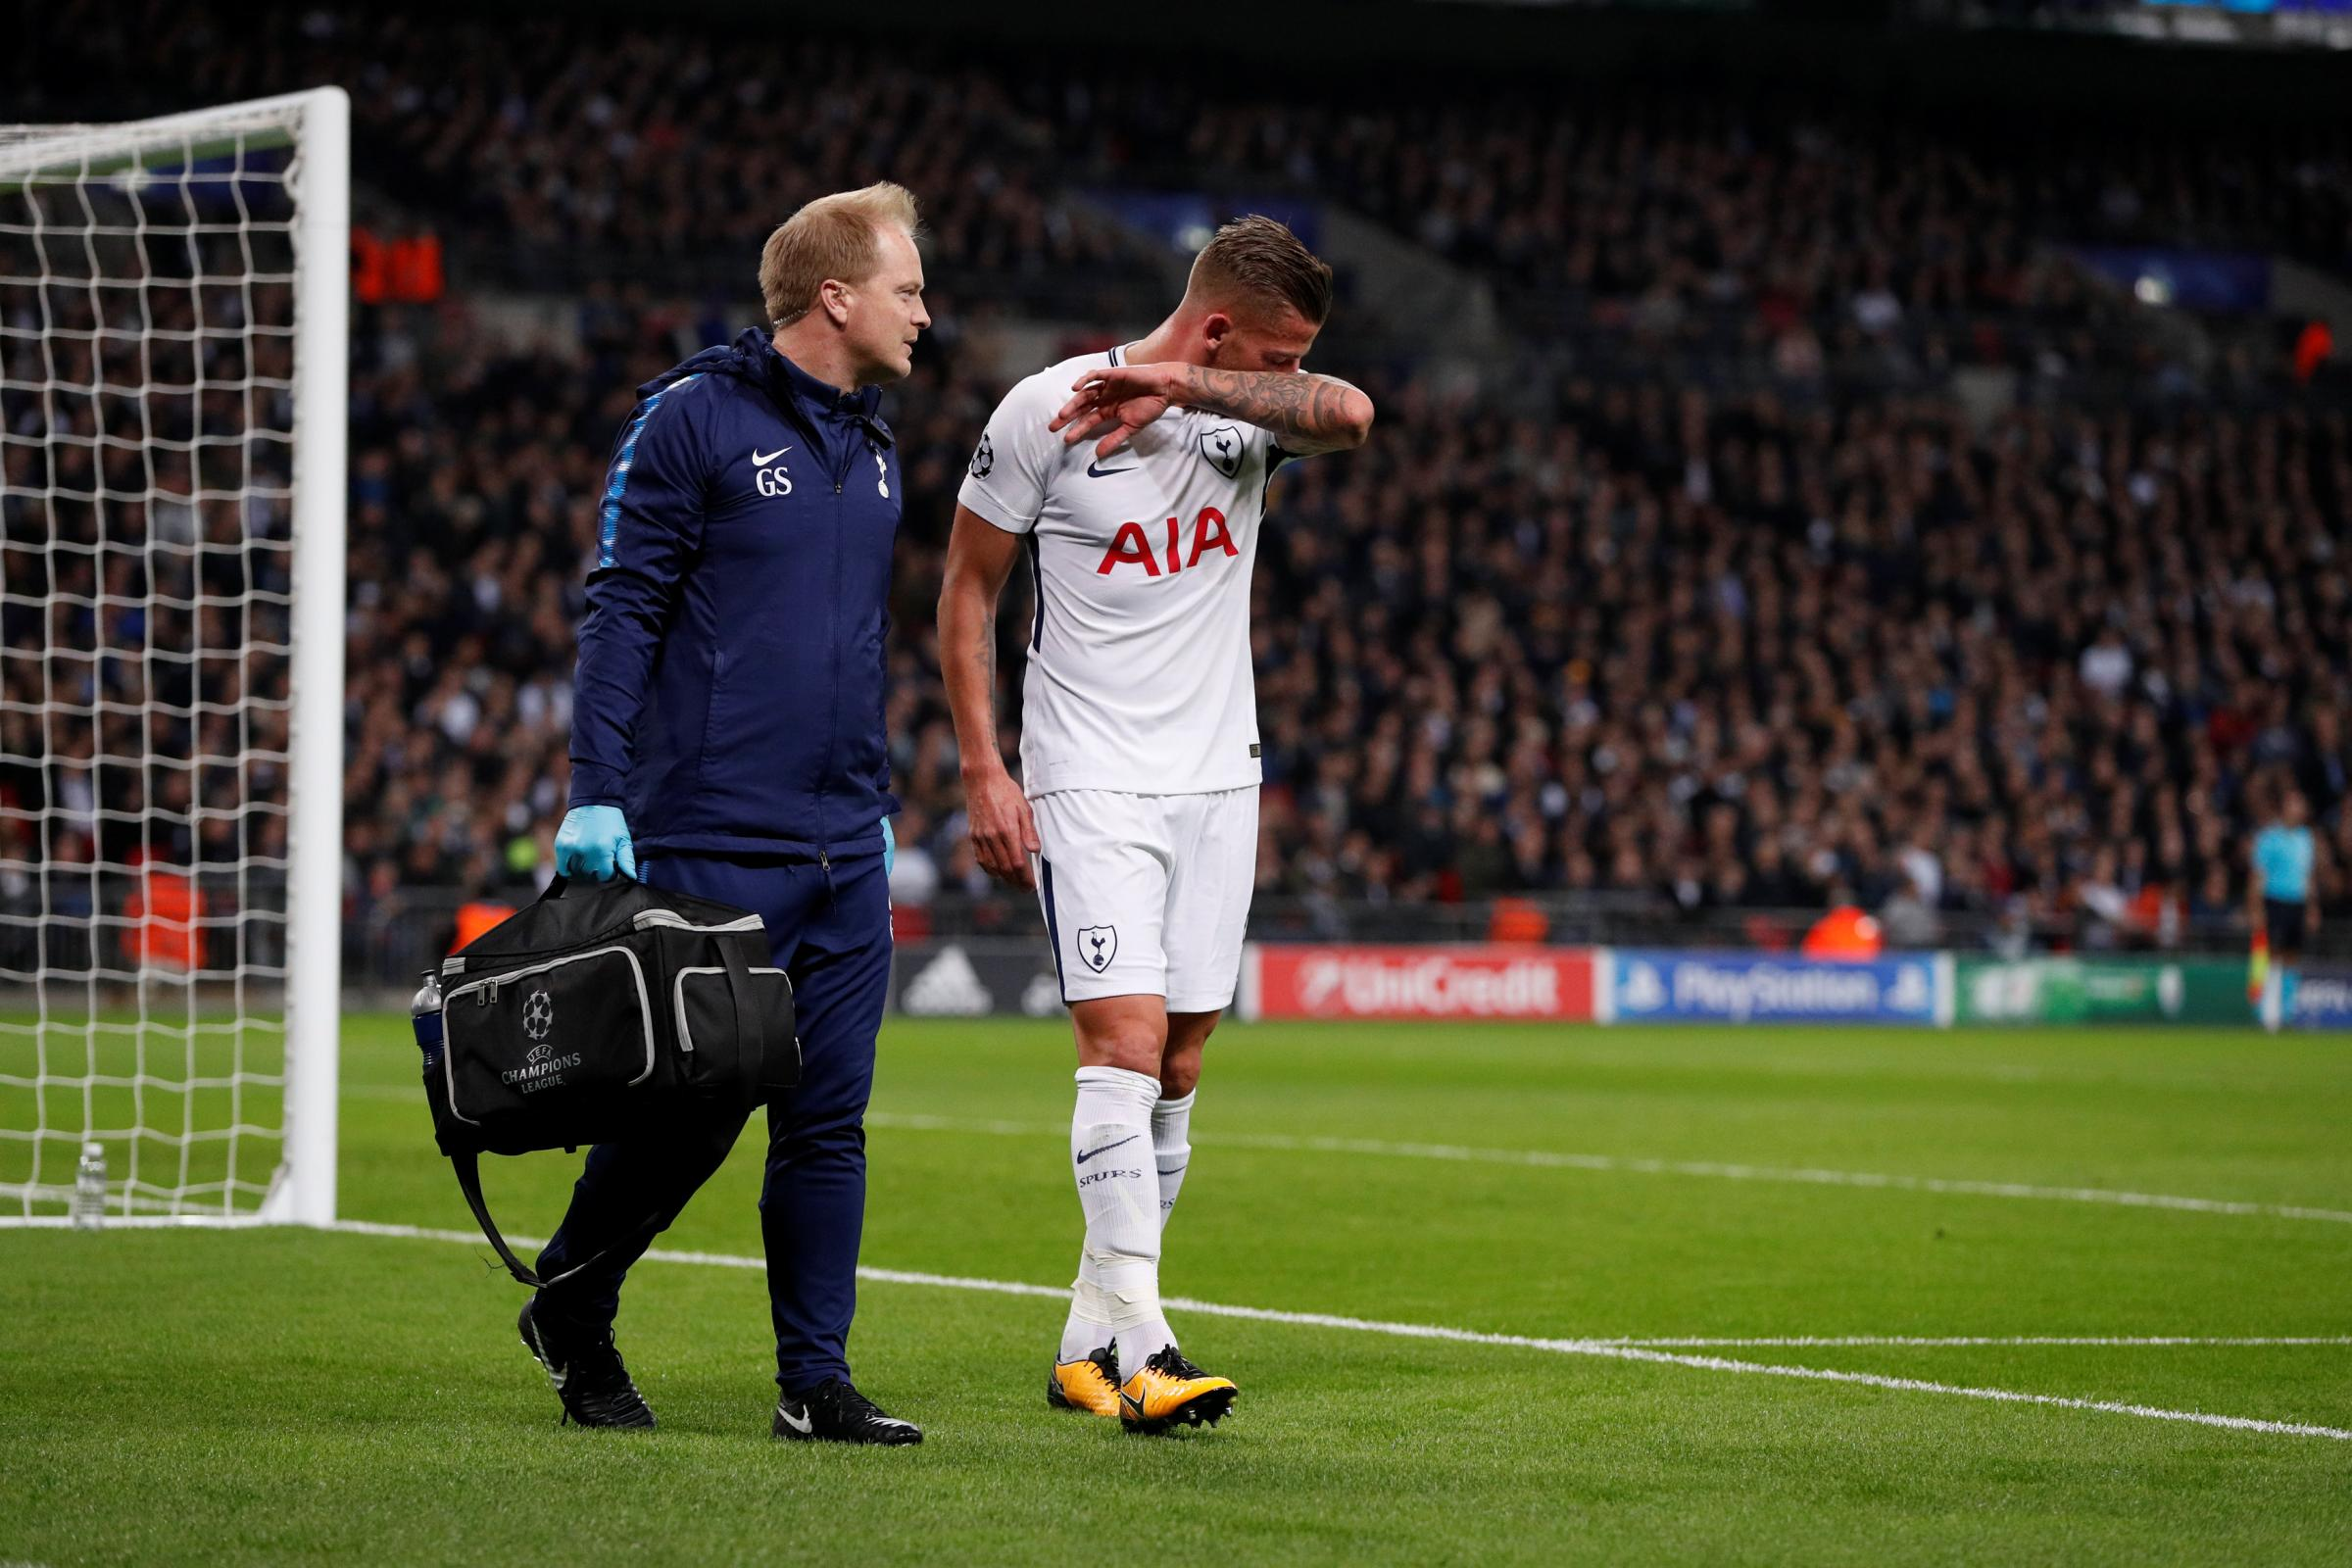 Toby Alderweireld suffered a hamstring injury in the victory against Real Madrid. Picture: Action Images